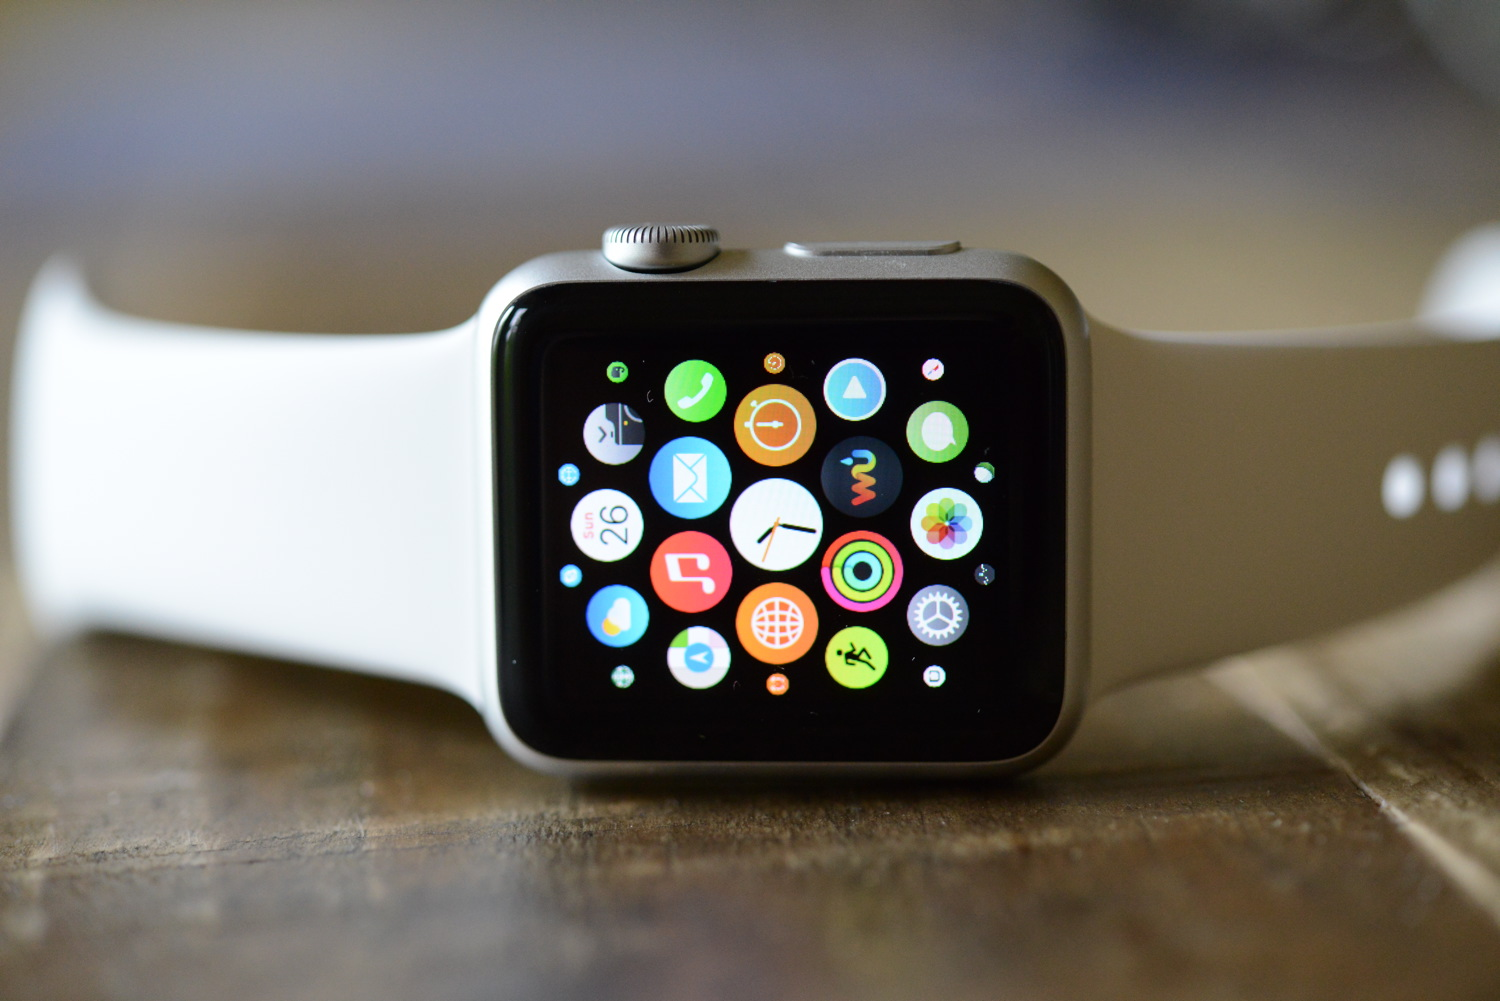 Apple Watch Review, Is It Hot Hardware?